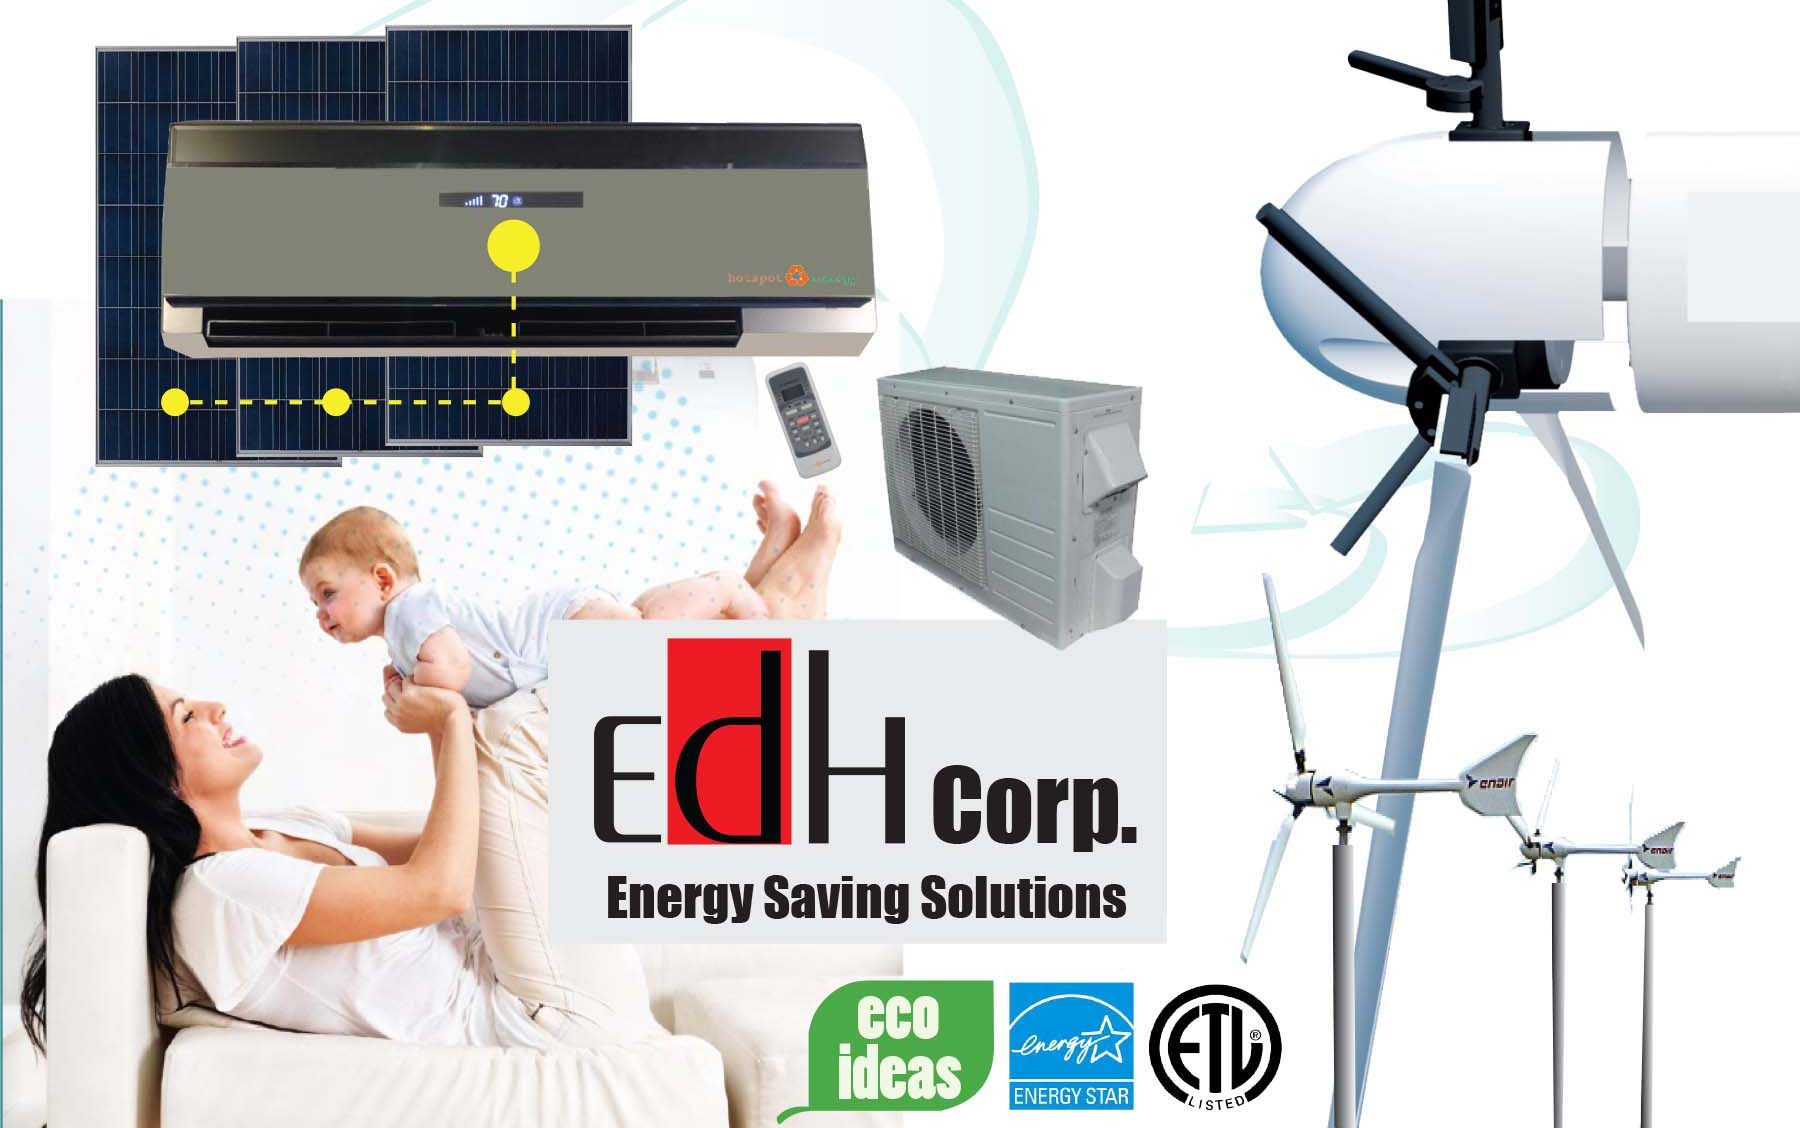 Energy Saving Solutions